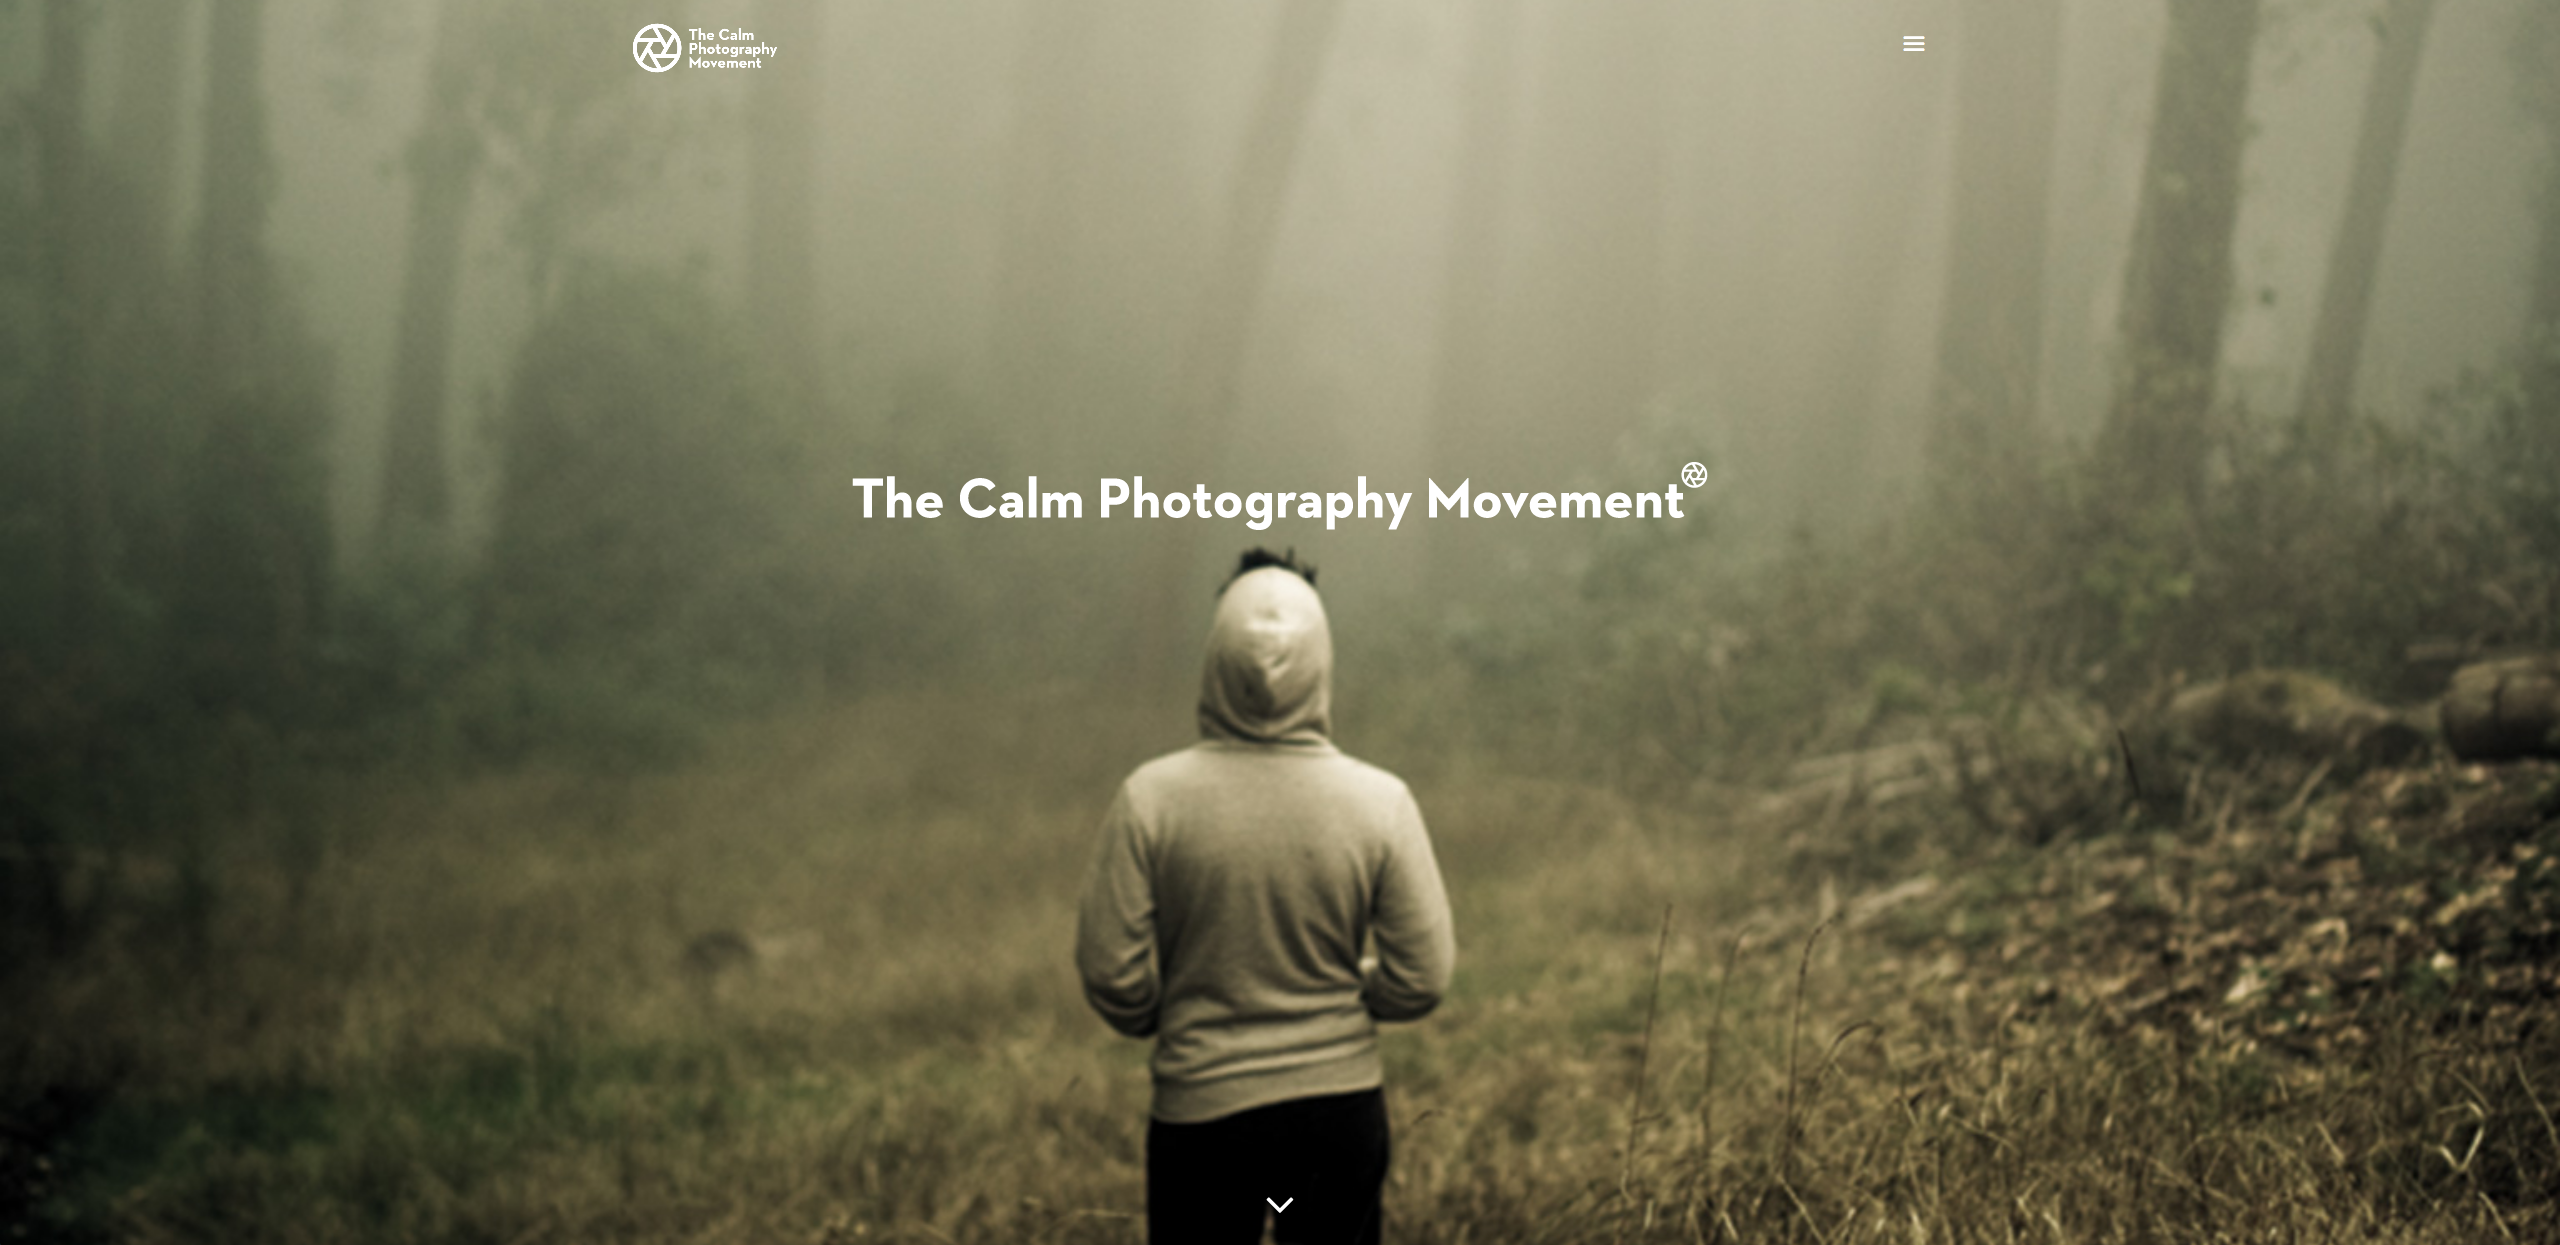 Major names support CALM photography movement